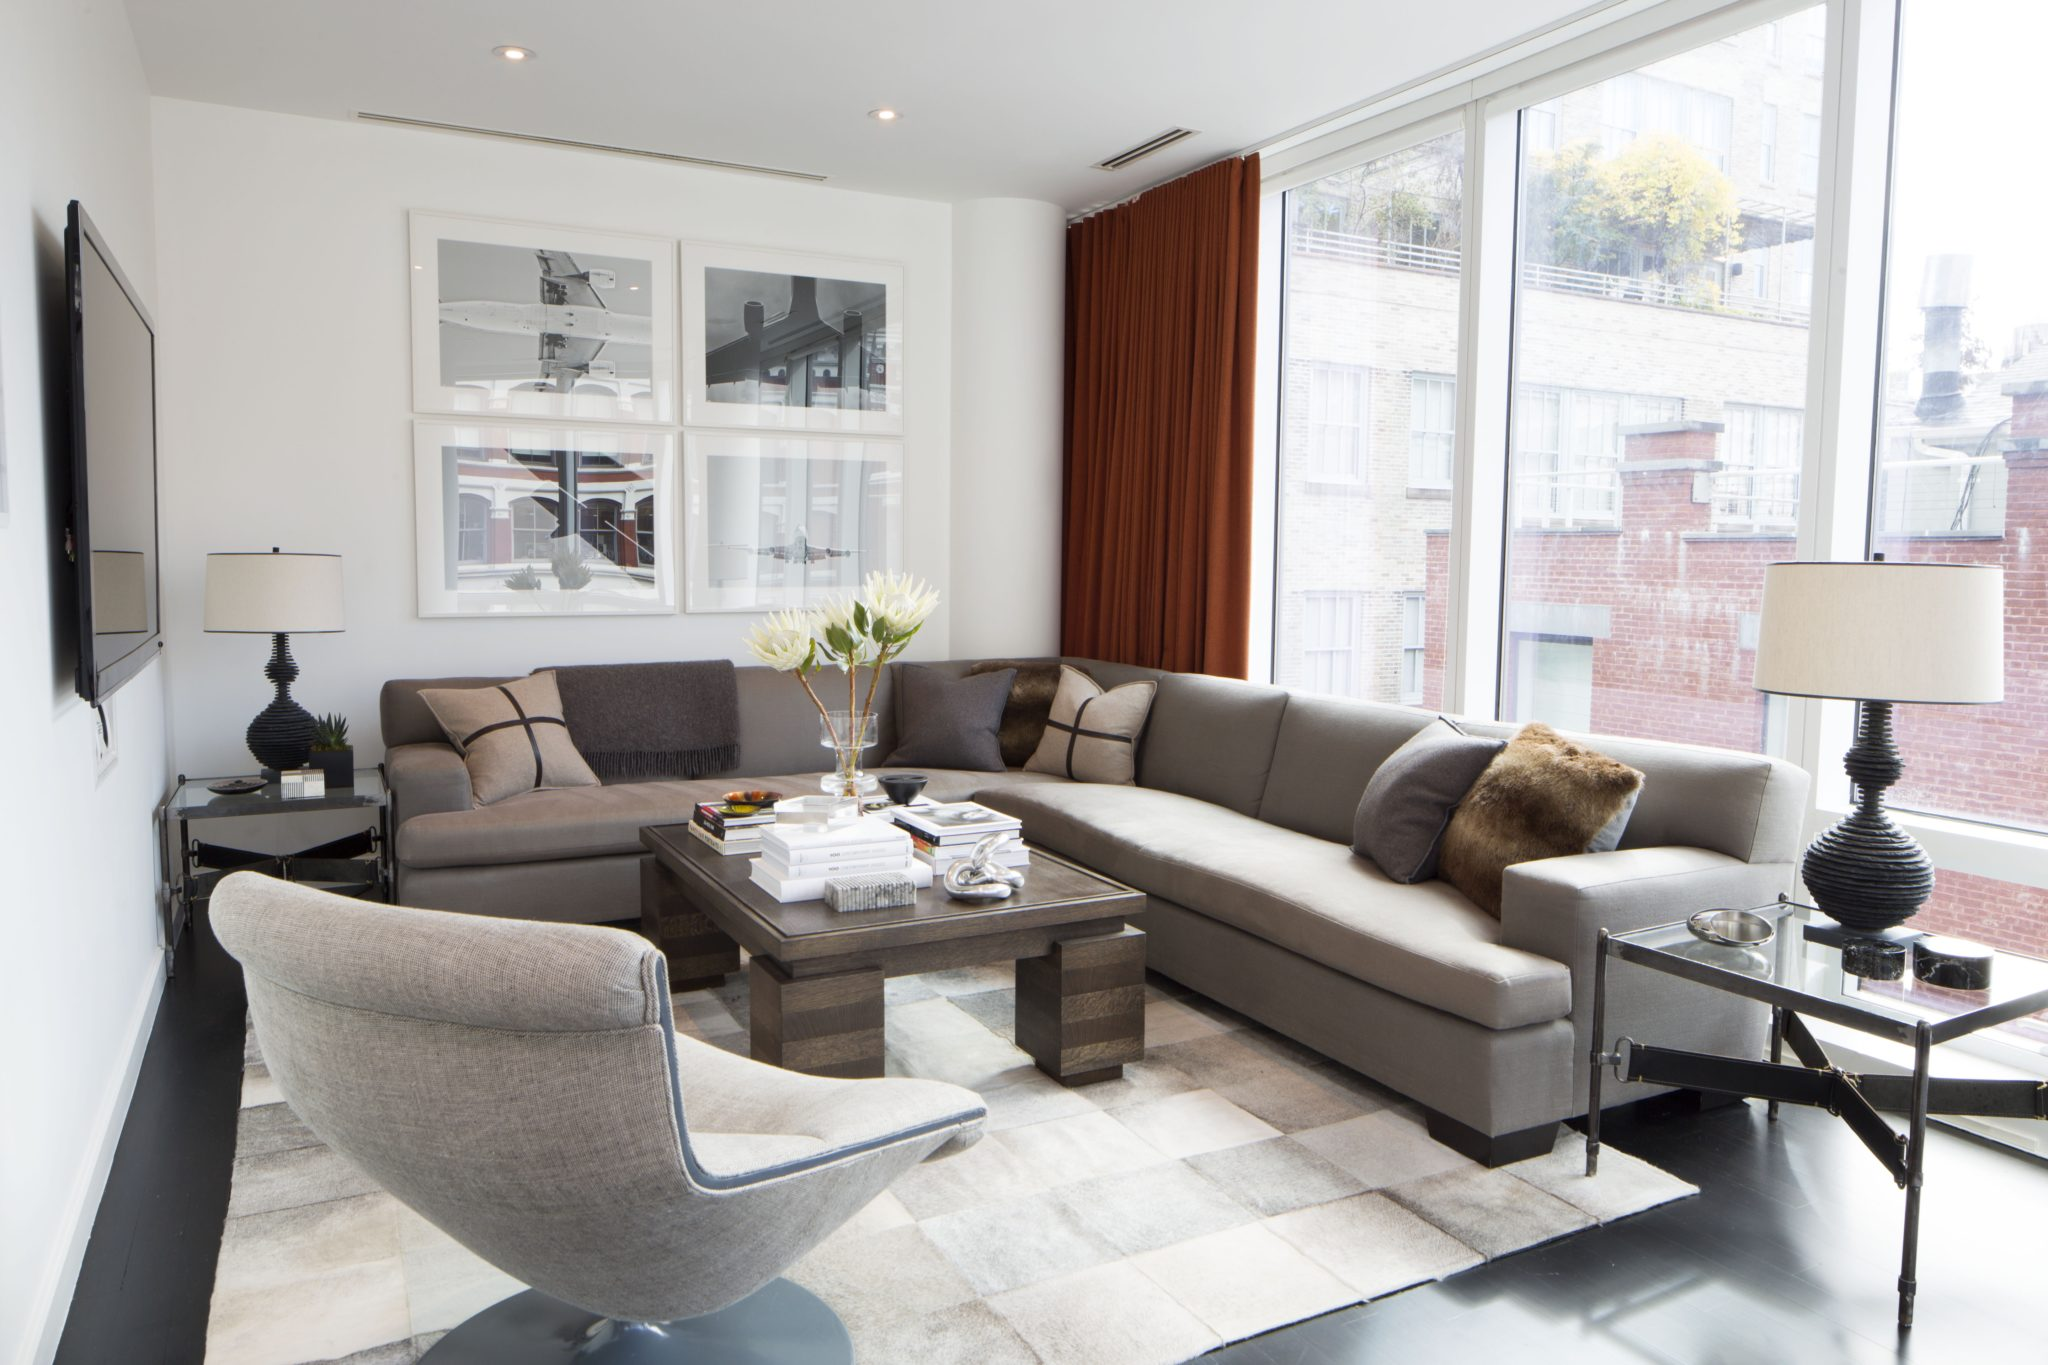 Astor Place - modern living roomby J. PATRYCE DESIGN